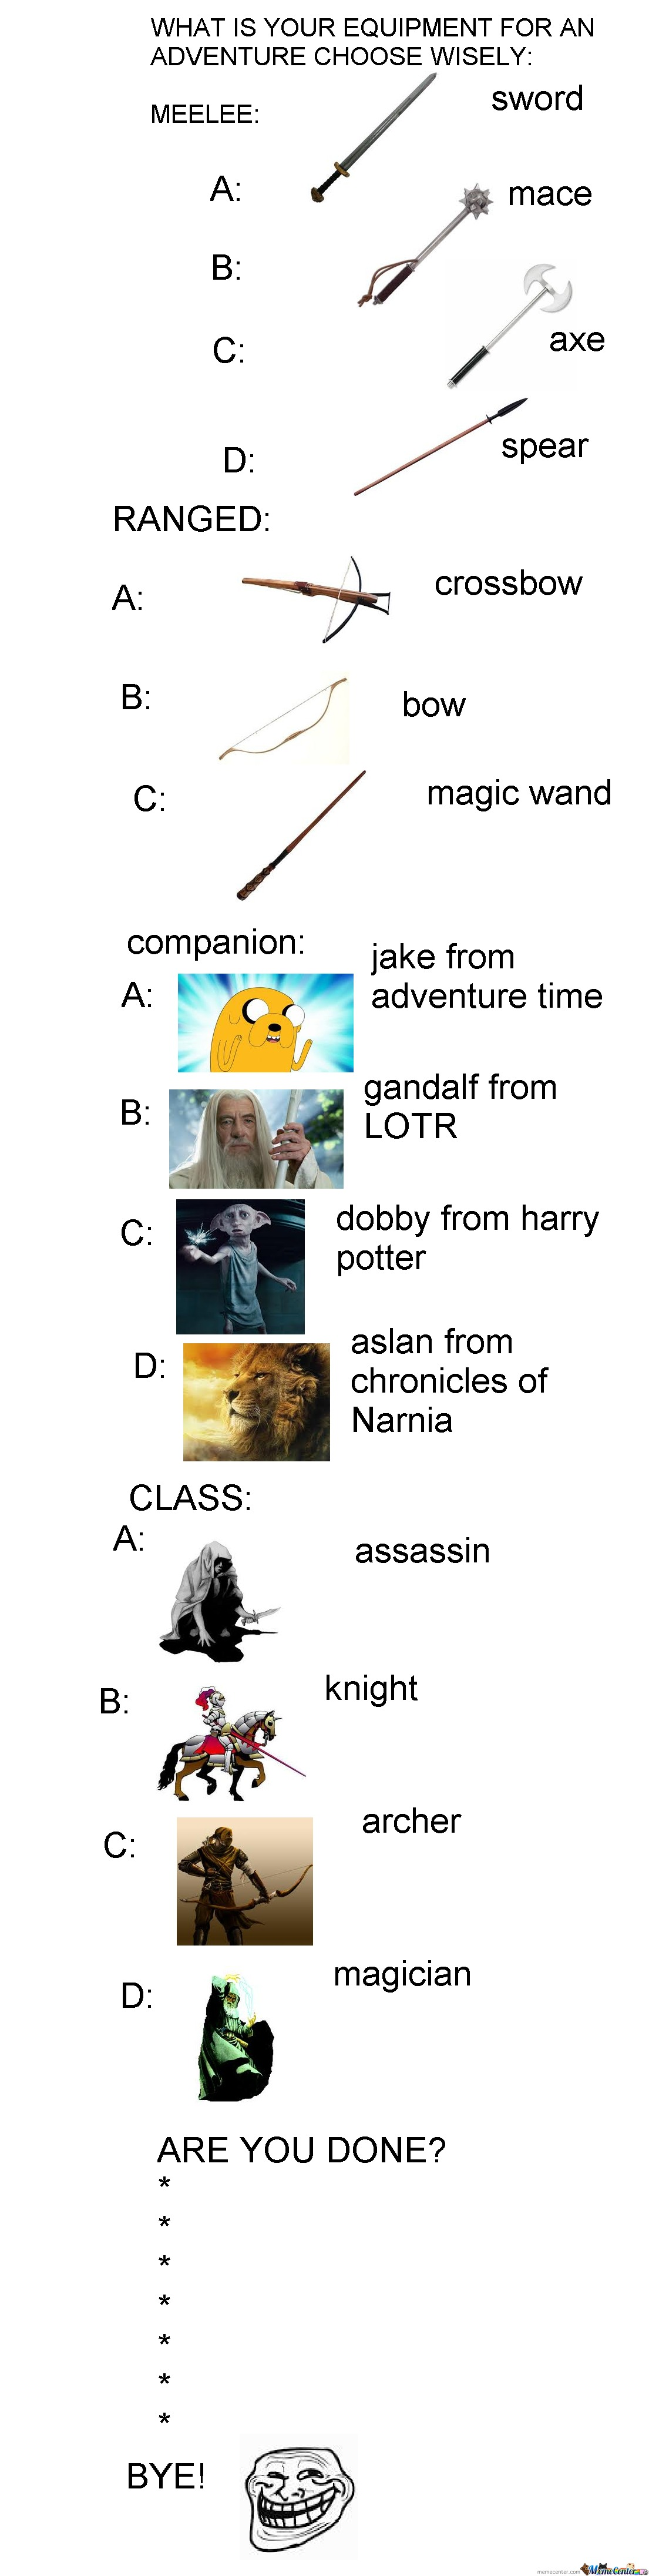 Choose Your Adventure